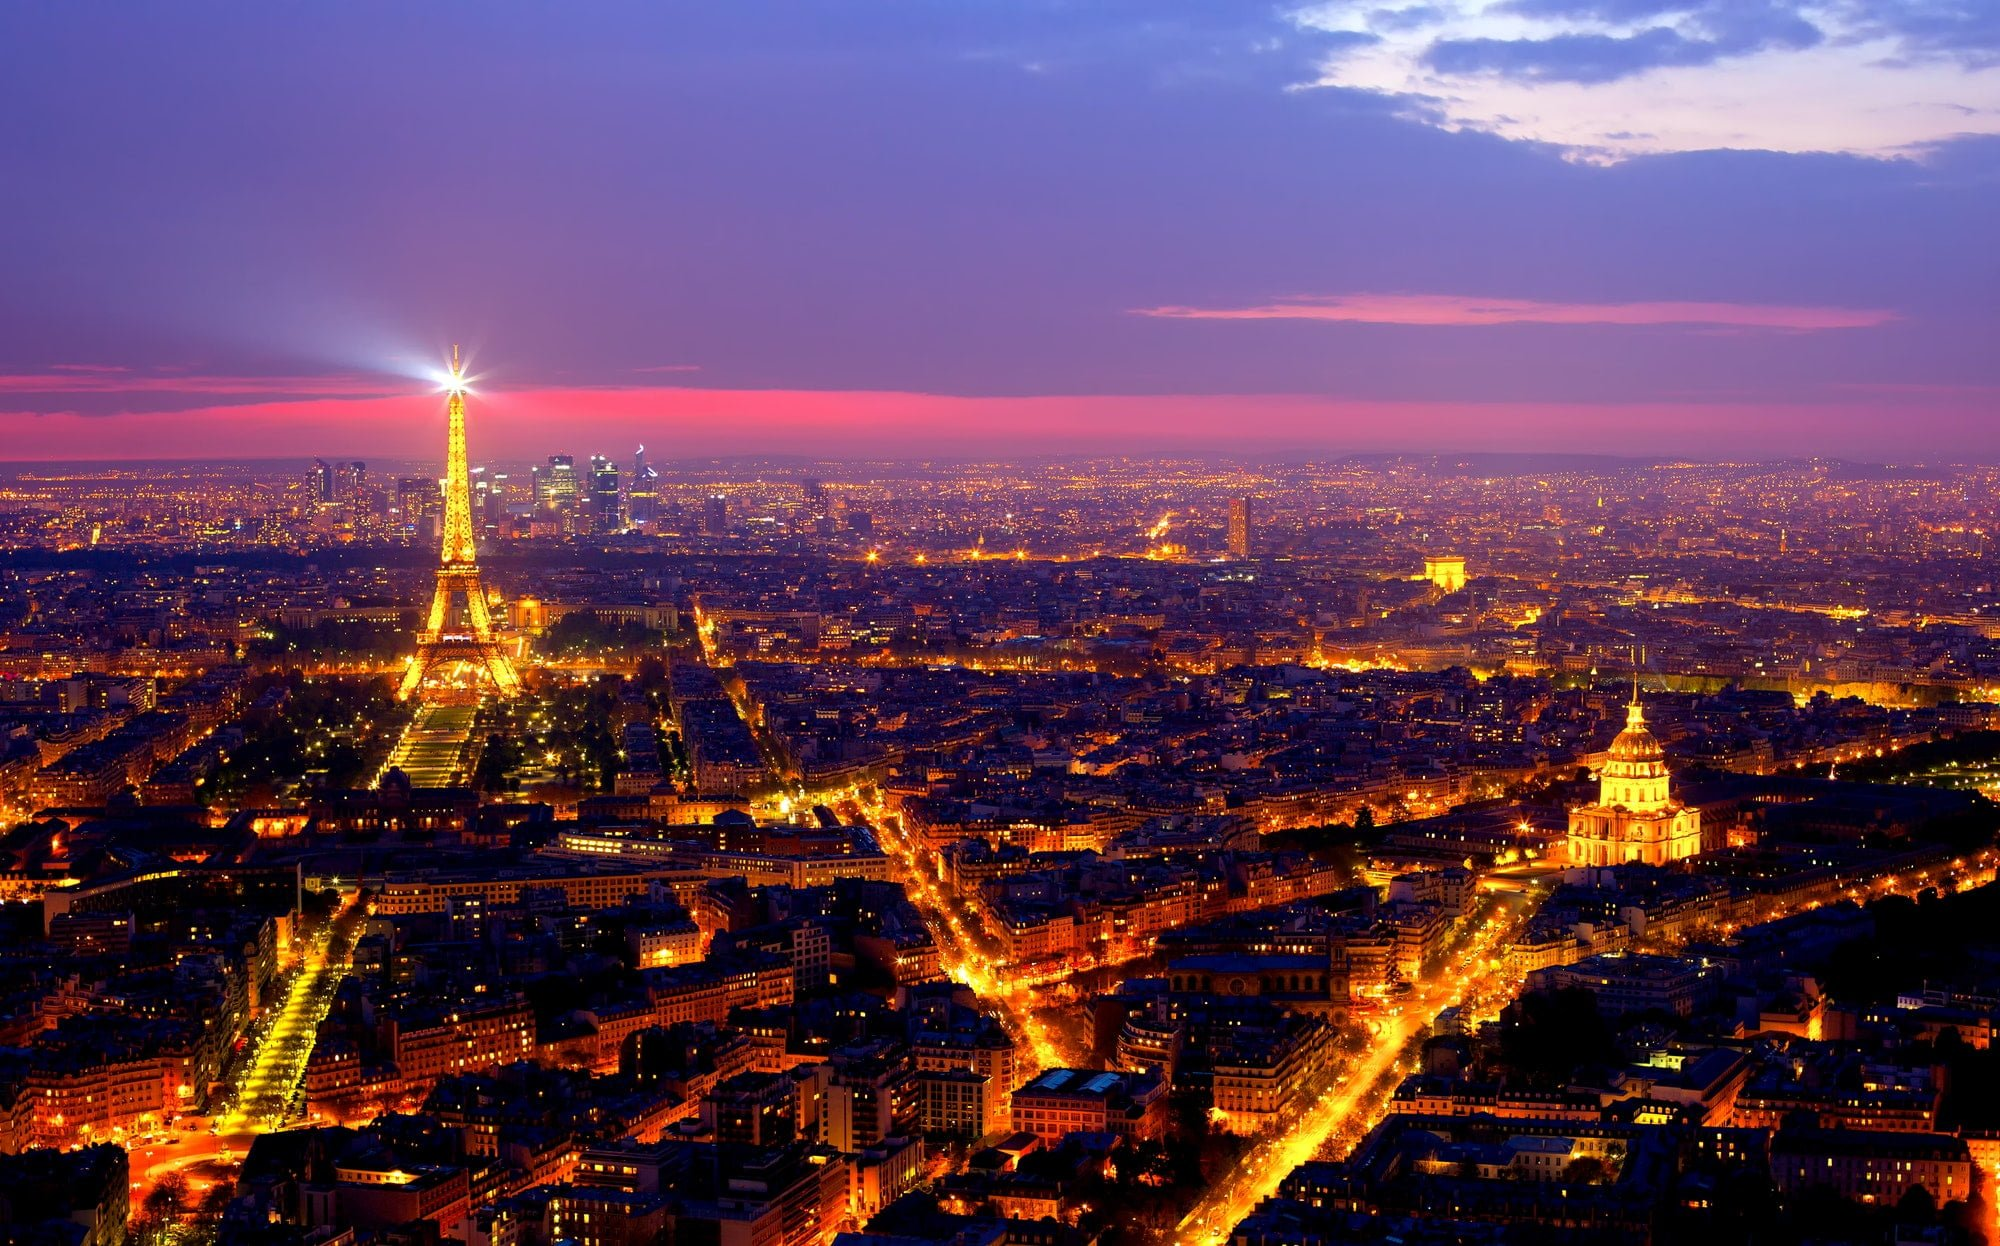 View of Paris by night